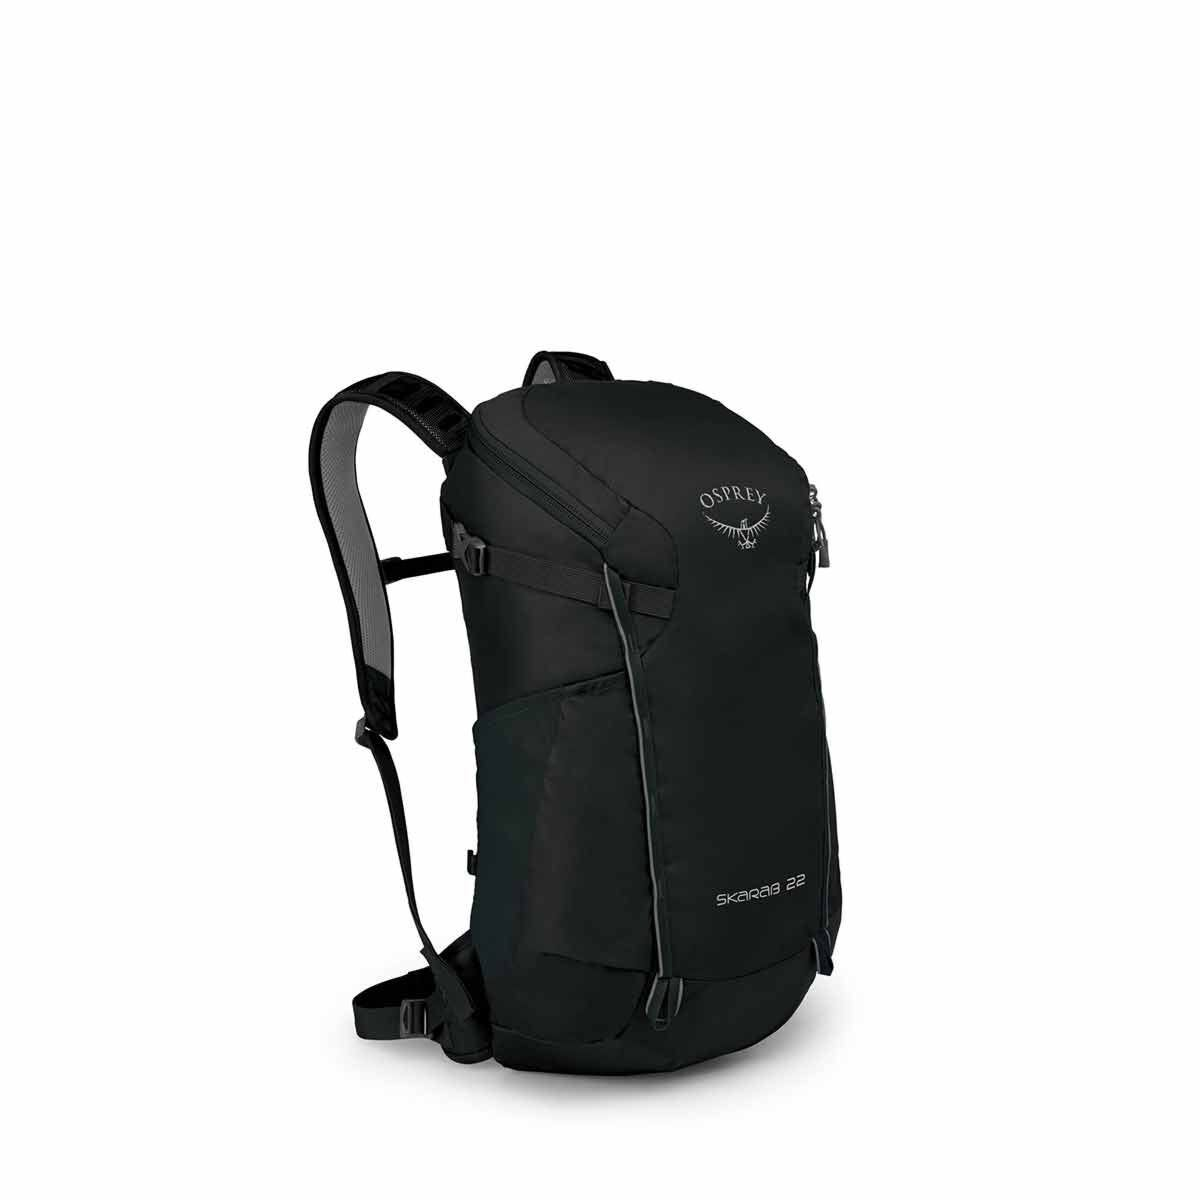 Osprey Skarab 22 Litre Backpack